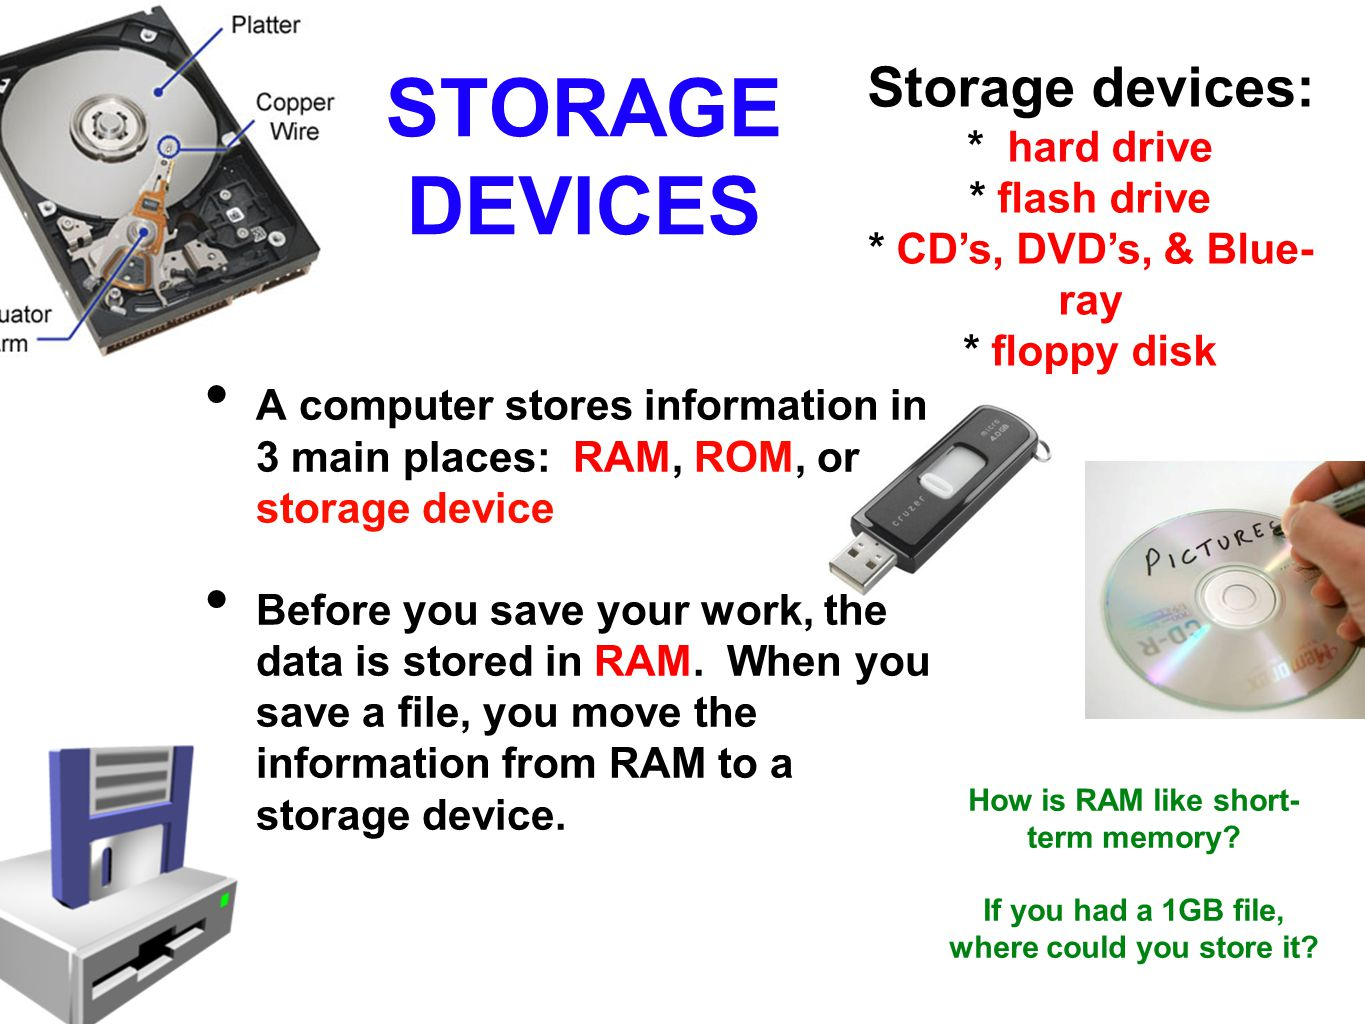 STORAGE DEVICES A computer stores information in 3 main places: RAM, ROM, or storage device Before you save your work, the data is stored in RAM.